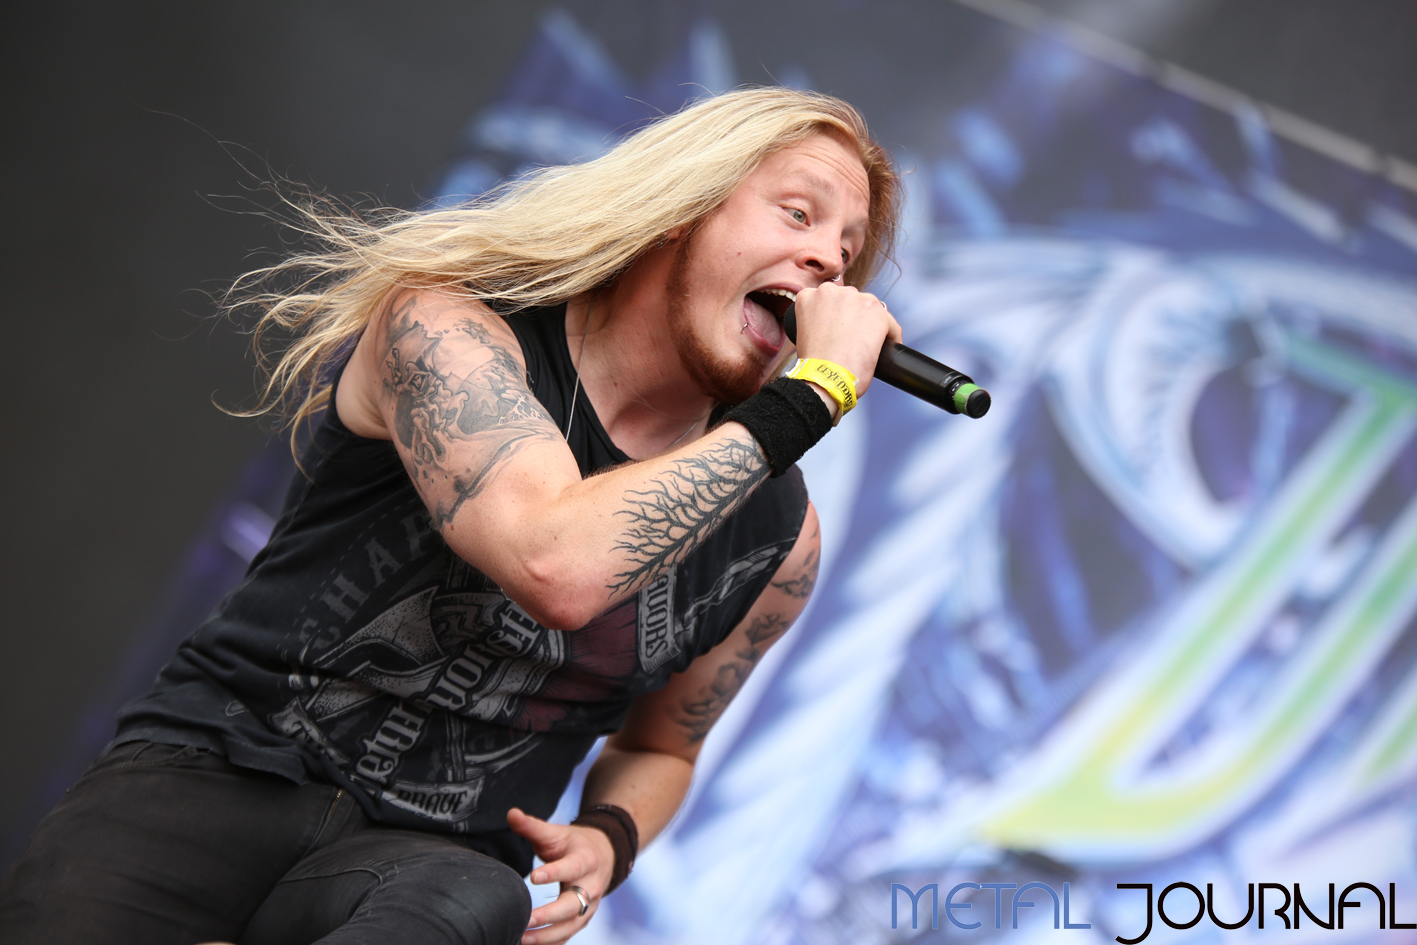 dragonforce - leyendas del rock 2018 pic 6